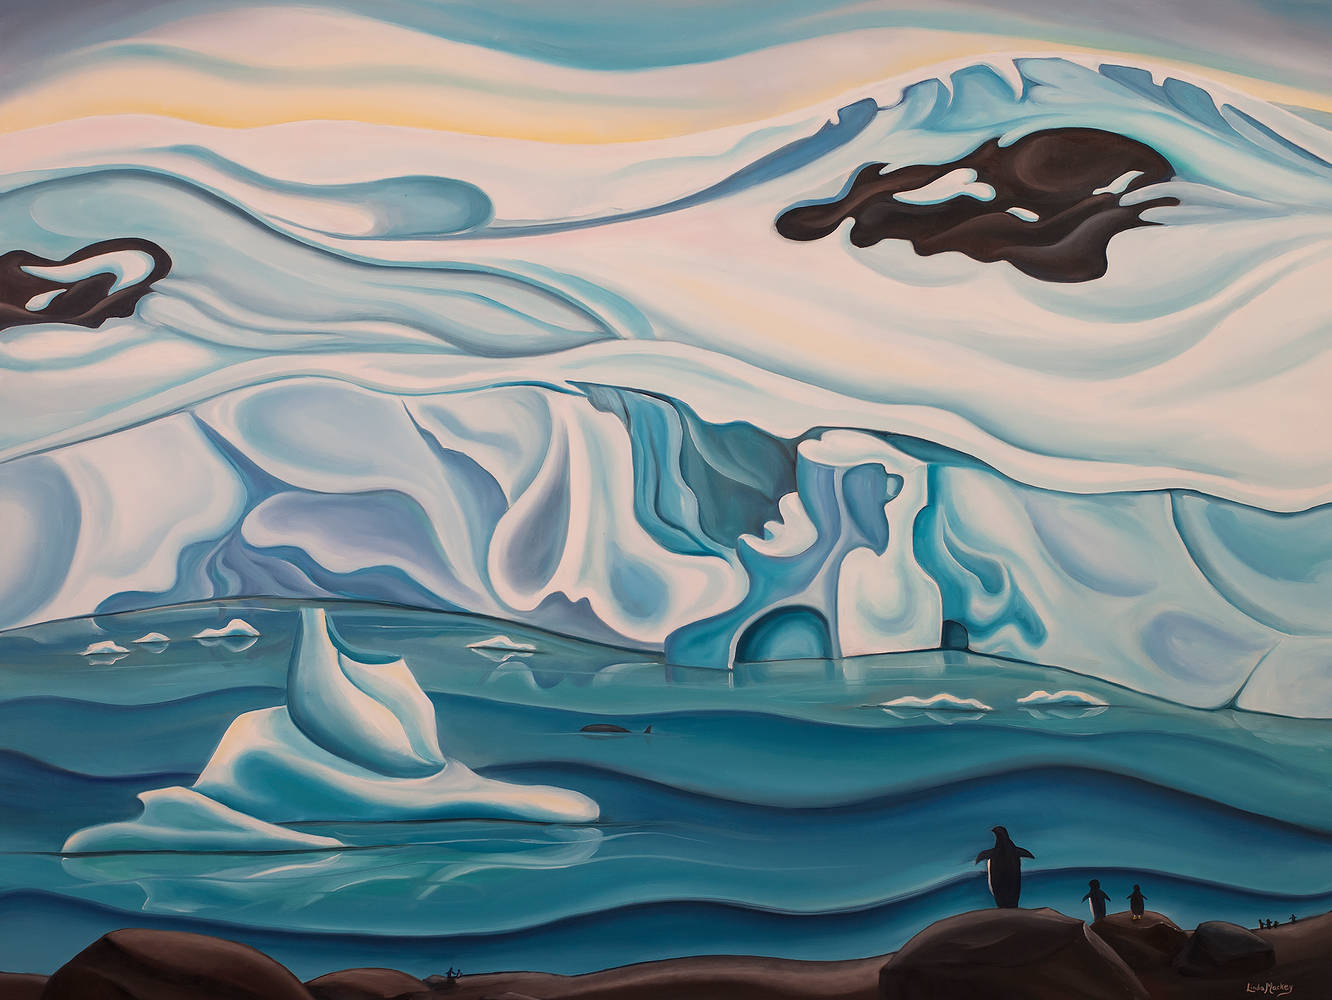 Oil painting Watching the Iceberg Calve - Antarctica, 2013 by Linda Lang